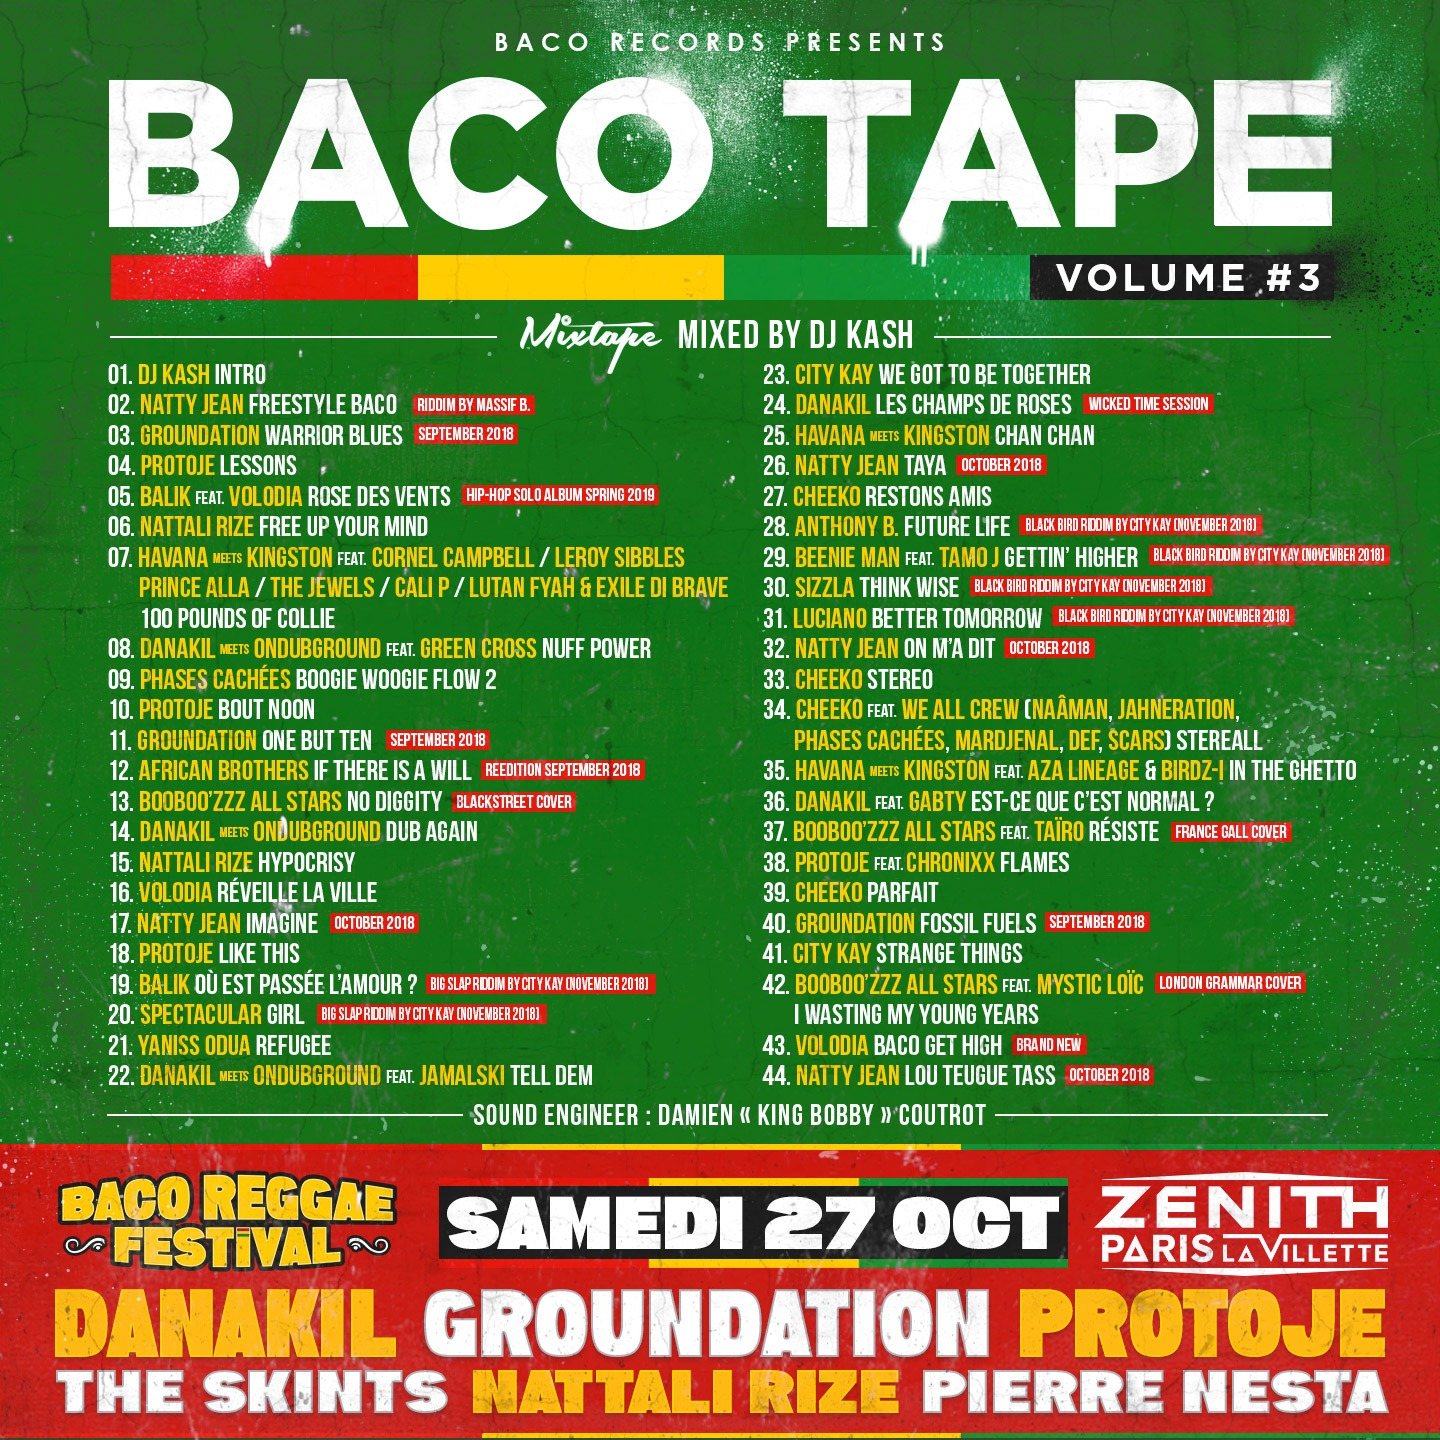 BACO TAPE VOLUME #3 // free download